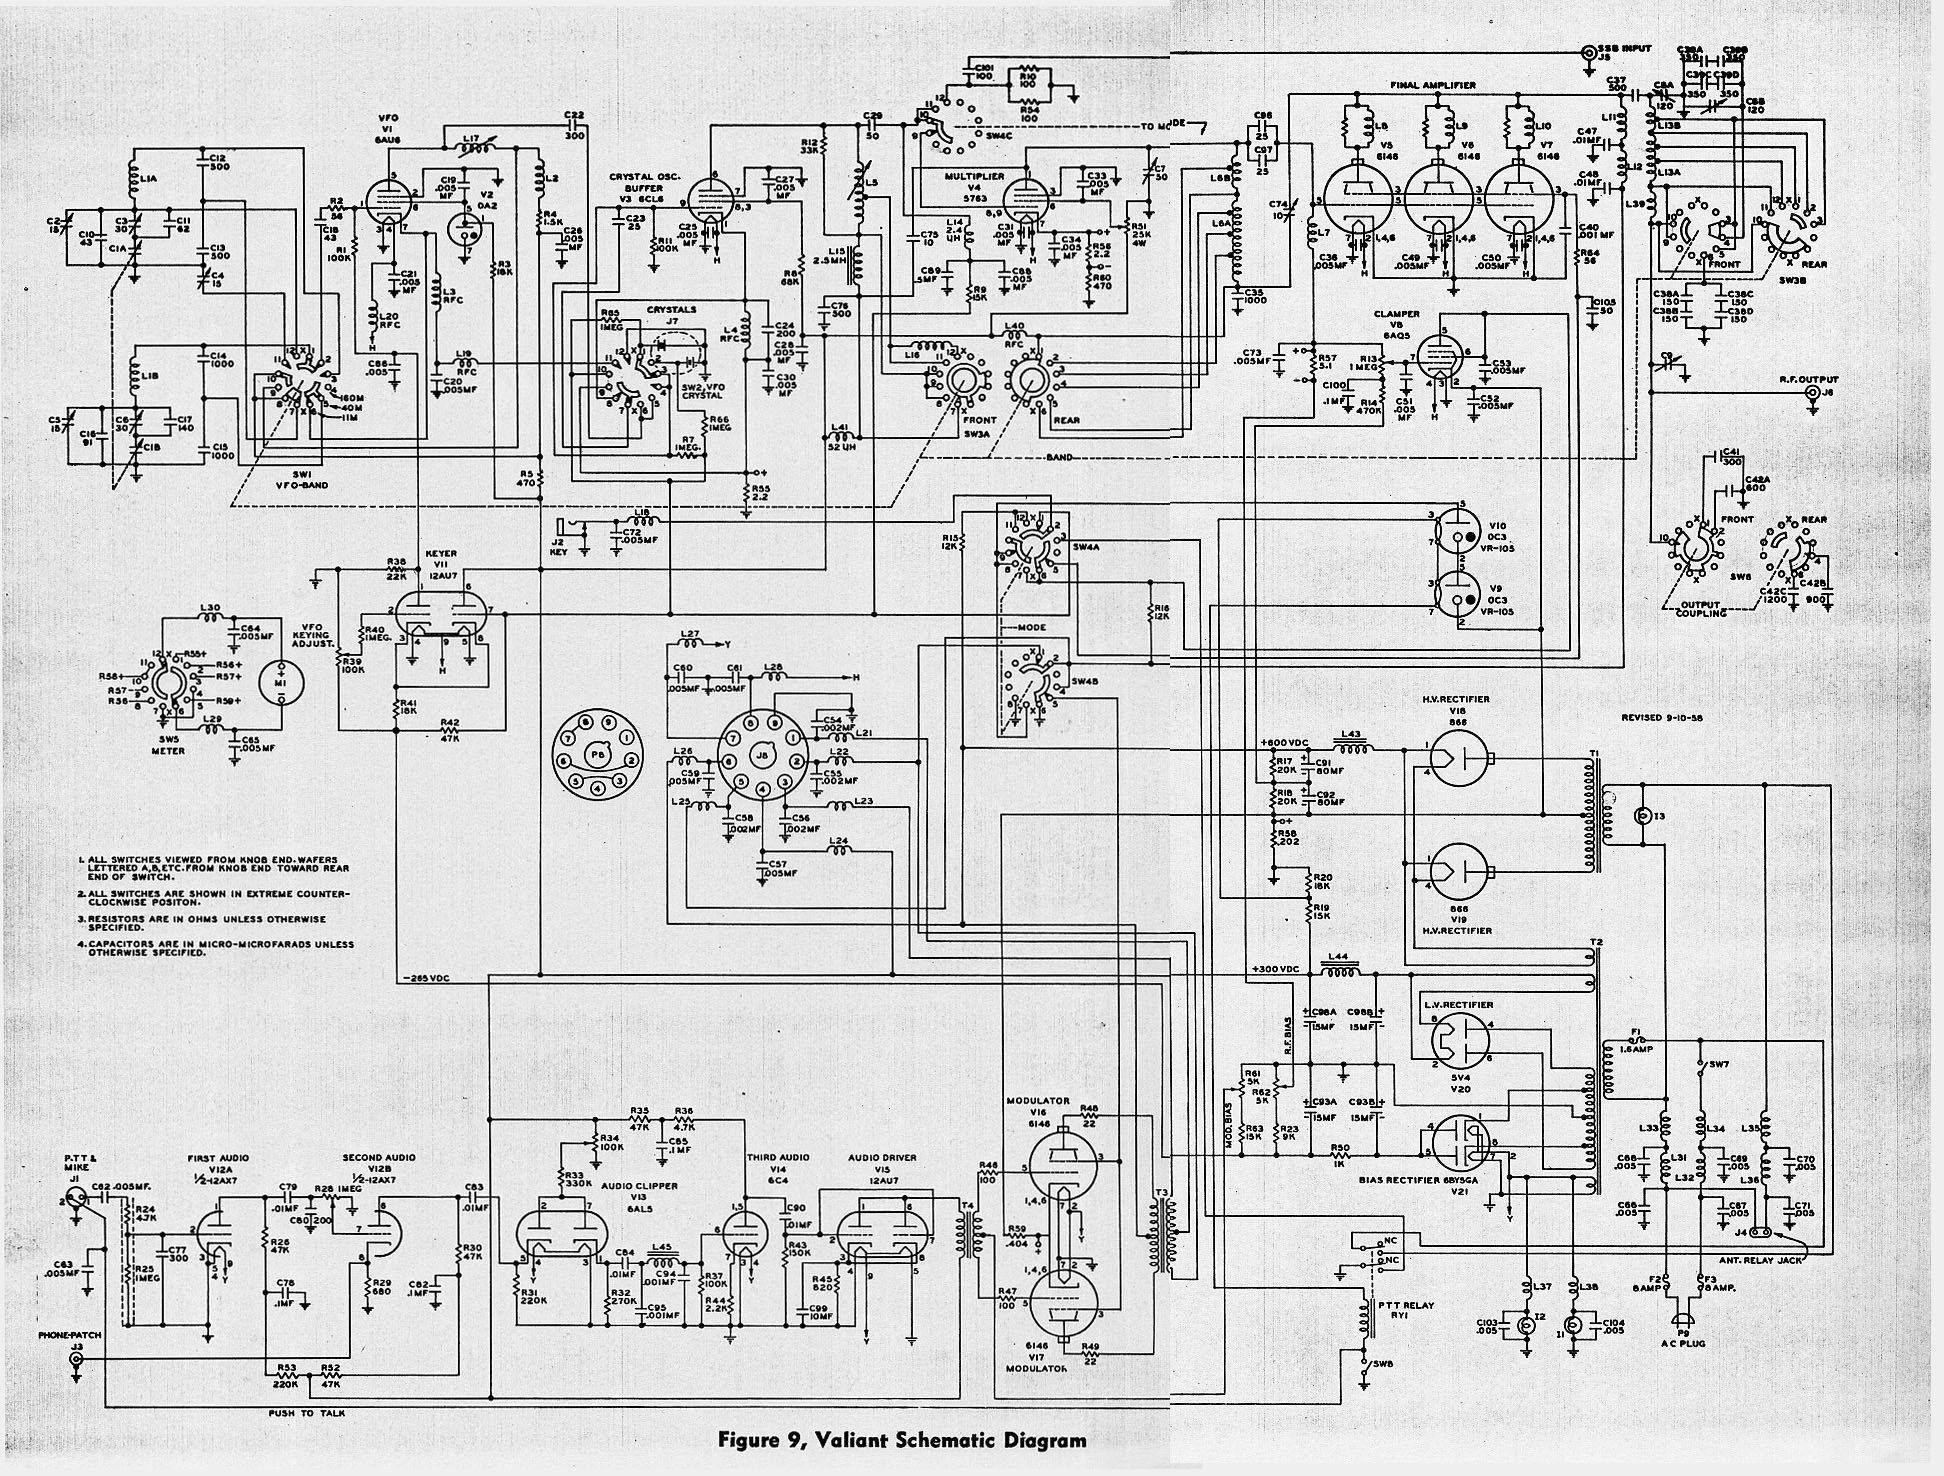 1955 1962 e f johnson viking valiant am cw transmitter viking valiant schematic